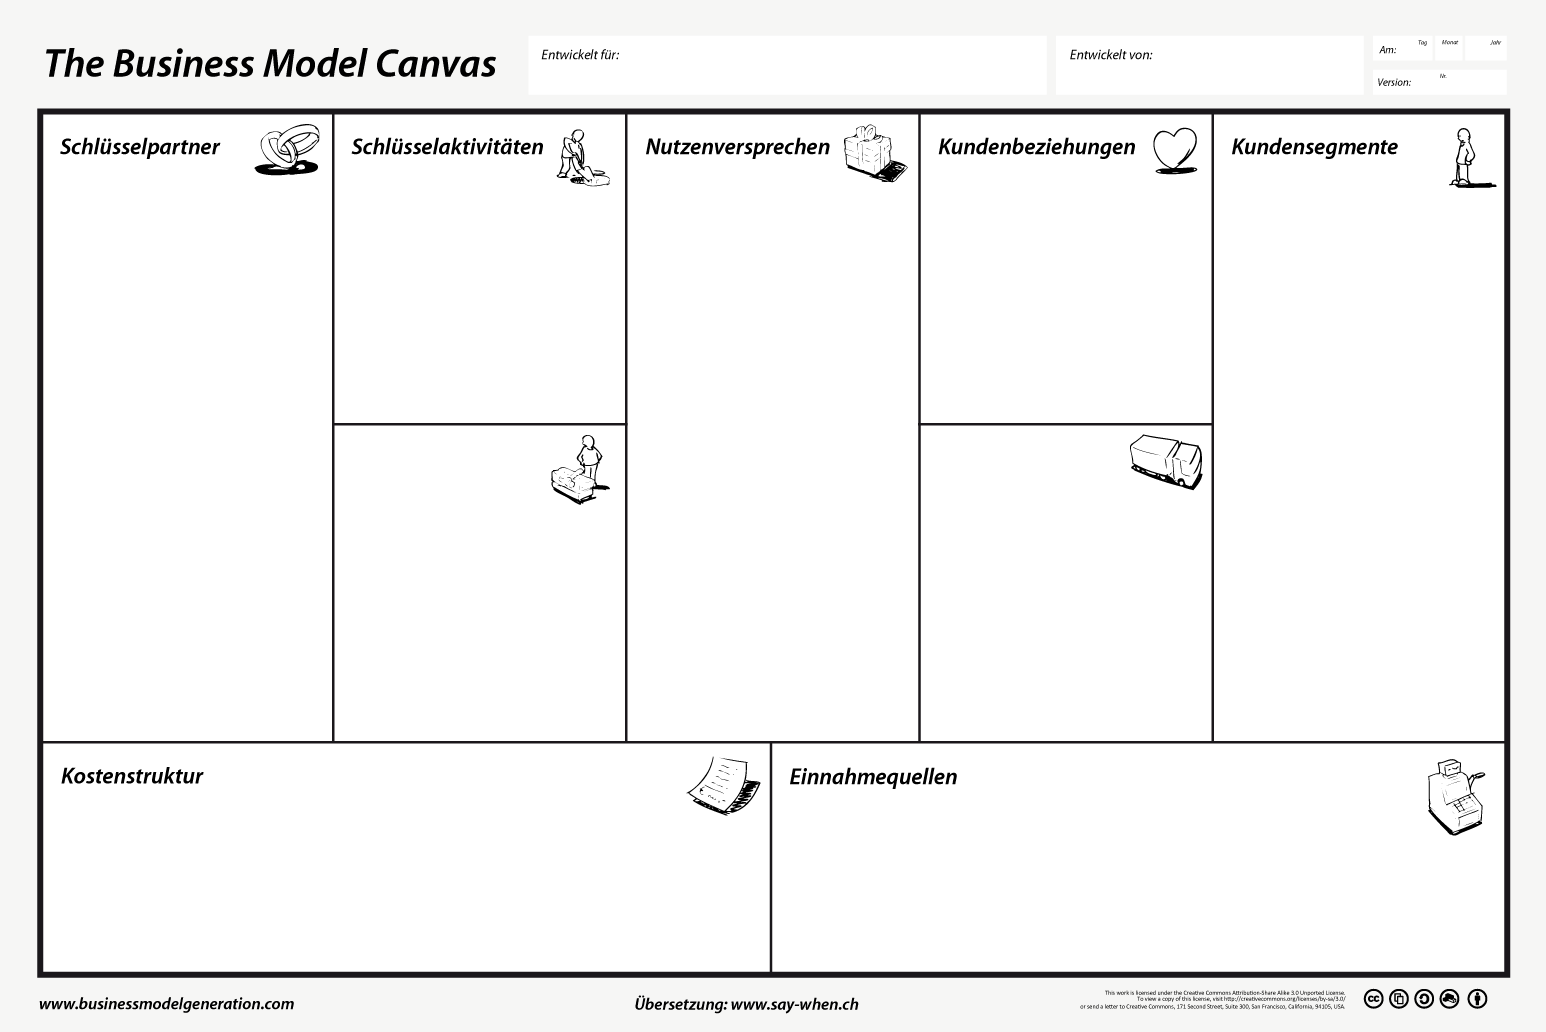 Digitale Geschäftsmodelle - Business Model Canvas